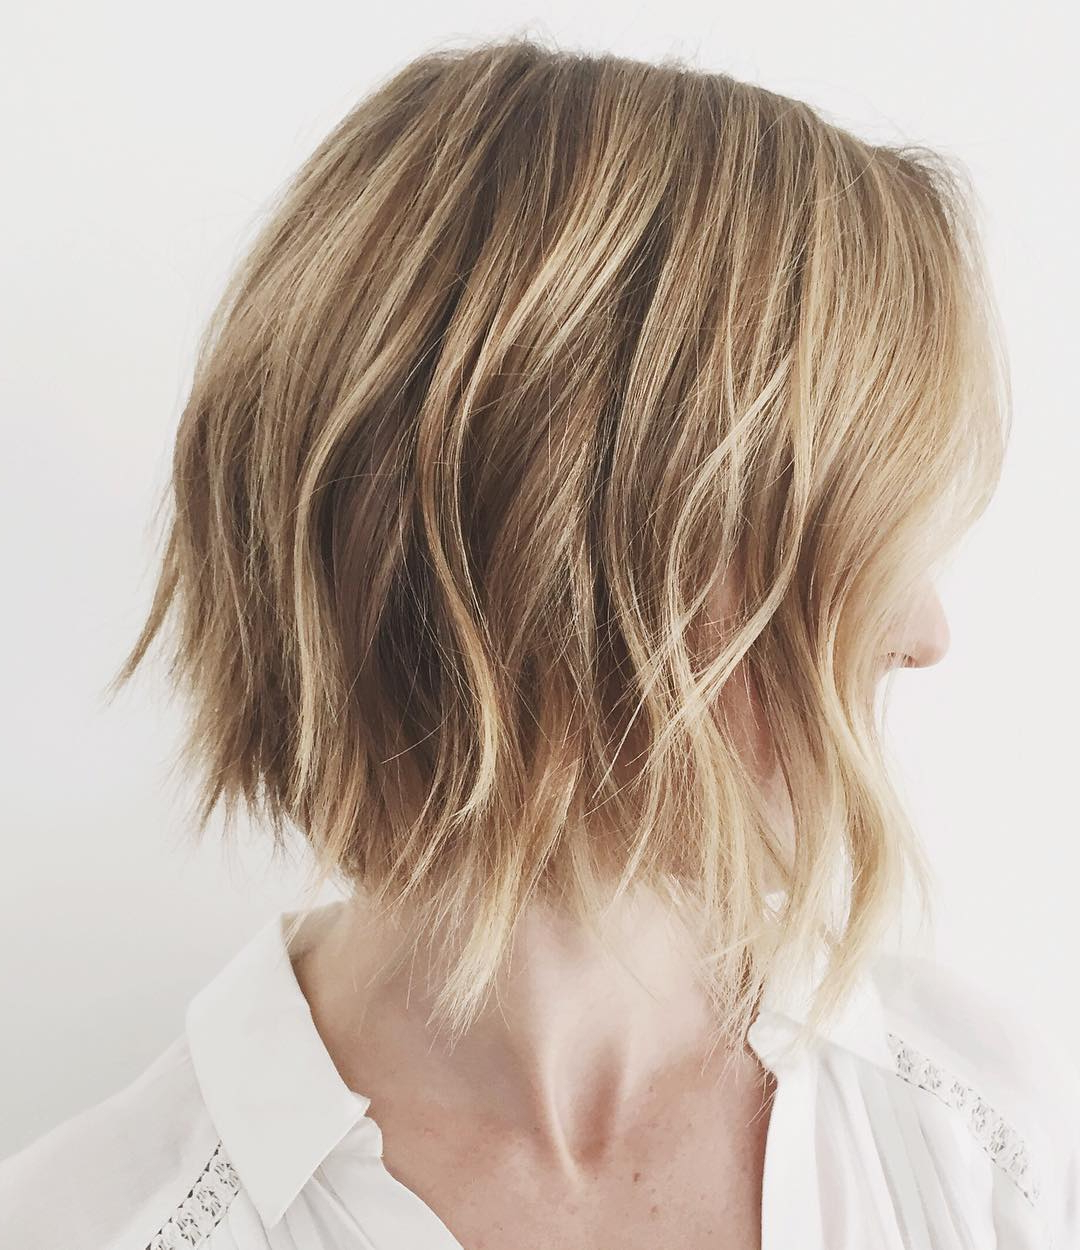 Best Short Bob Hairstyles Inspiration For Teens 2018 With Regard To Layered Short Bob Haircuts (View 17 of 20)